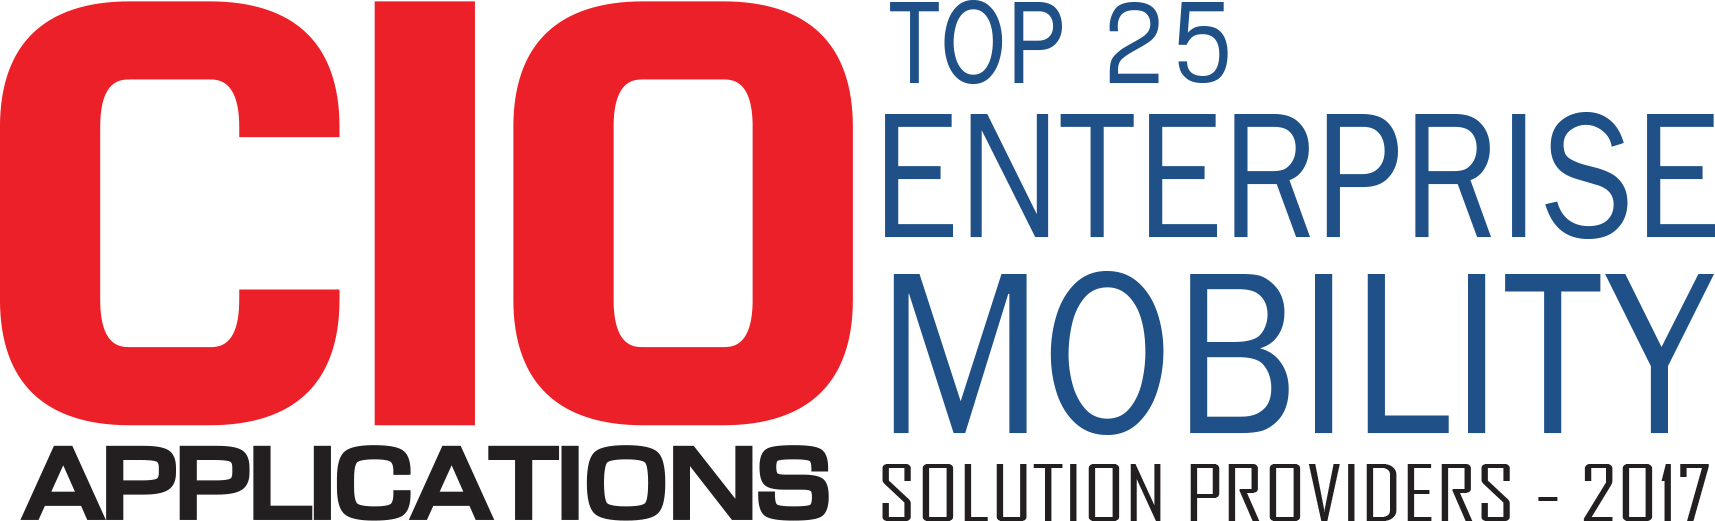 Top 25 Companies Providing Enterprise Mobility Solution - 2017